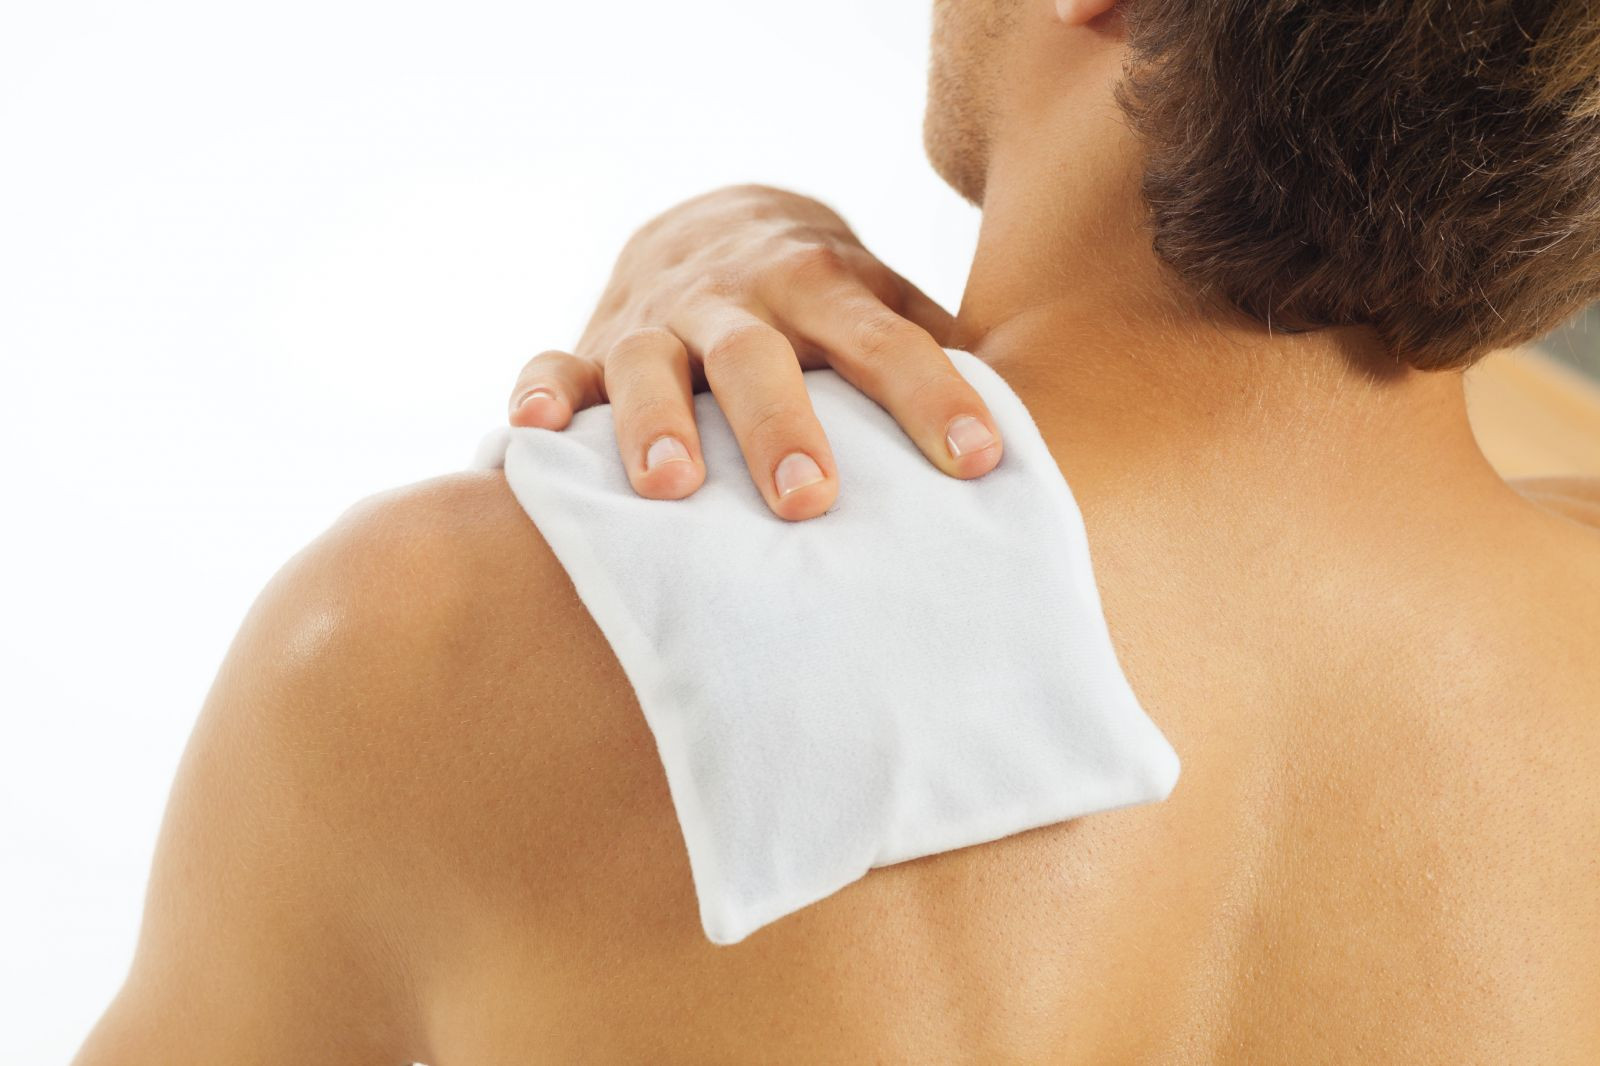 hb-painrelief-0116207265456867